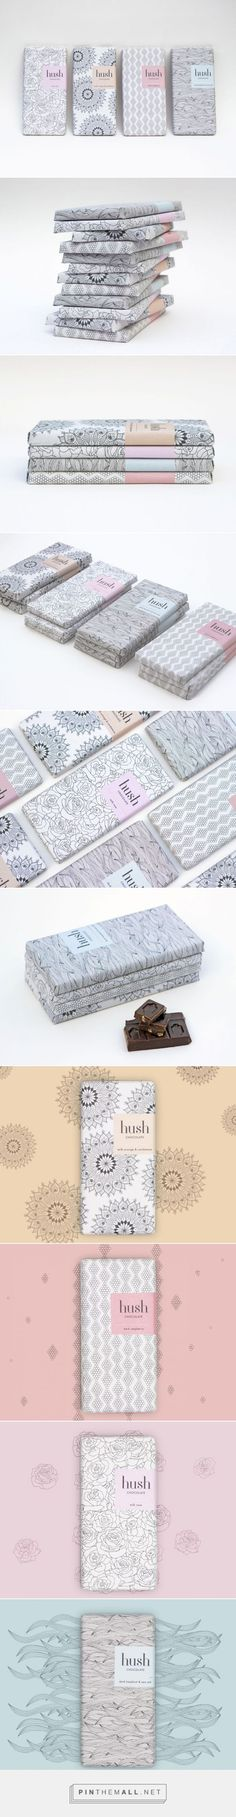 Hush Chocolate Packaging of the World - Creative Package Design Gallery - www. Tea Packaging, Food Packaging Design, Pretty Packaging, Packaging Design Inspiration, Brand Packaging, Branding Design, Bottle Packaging, Packaging Ideas, Geometric Patterns